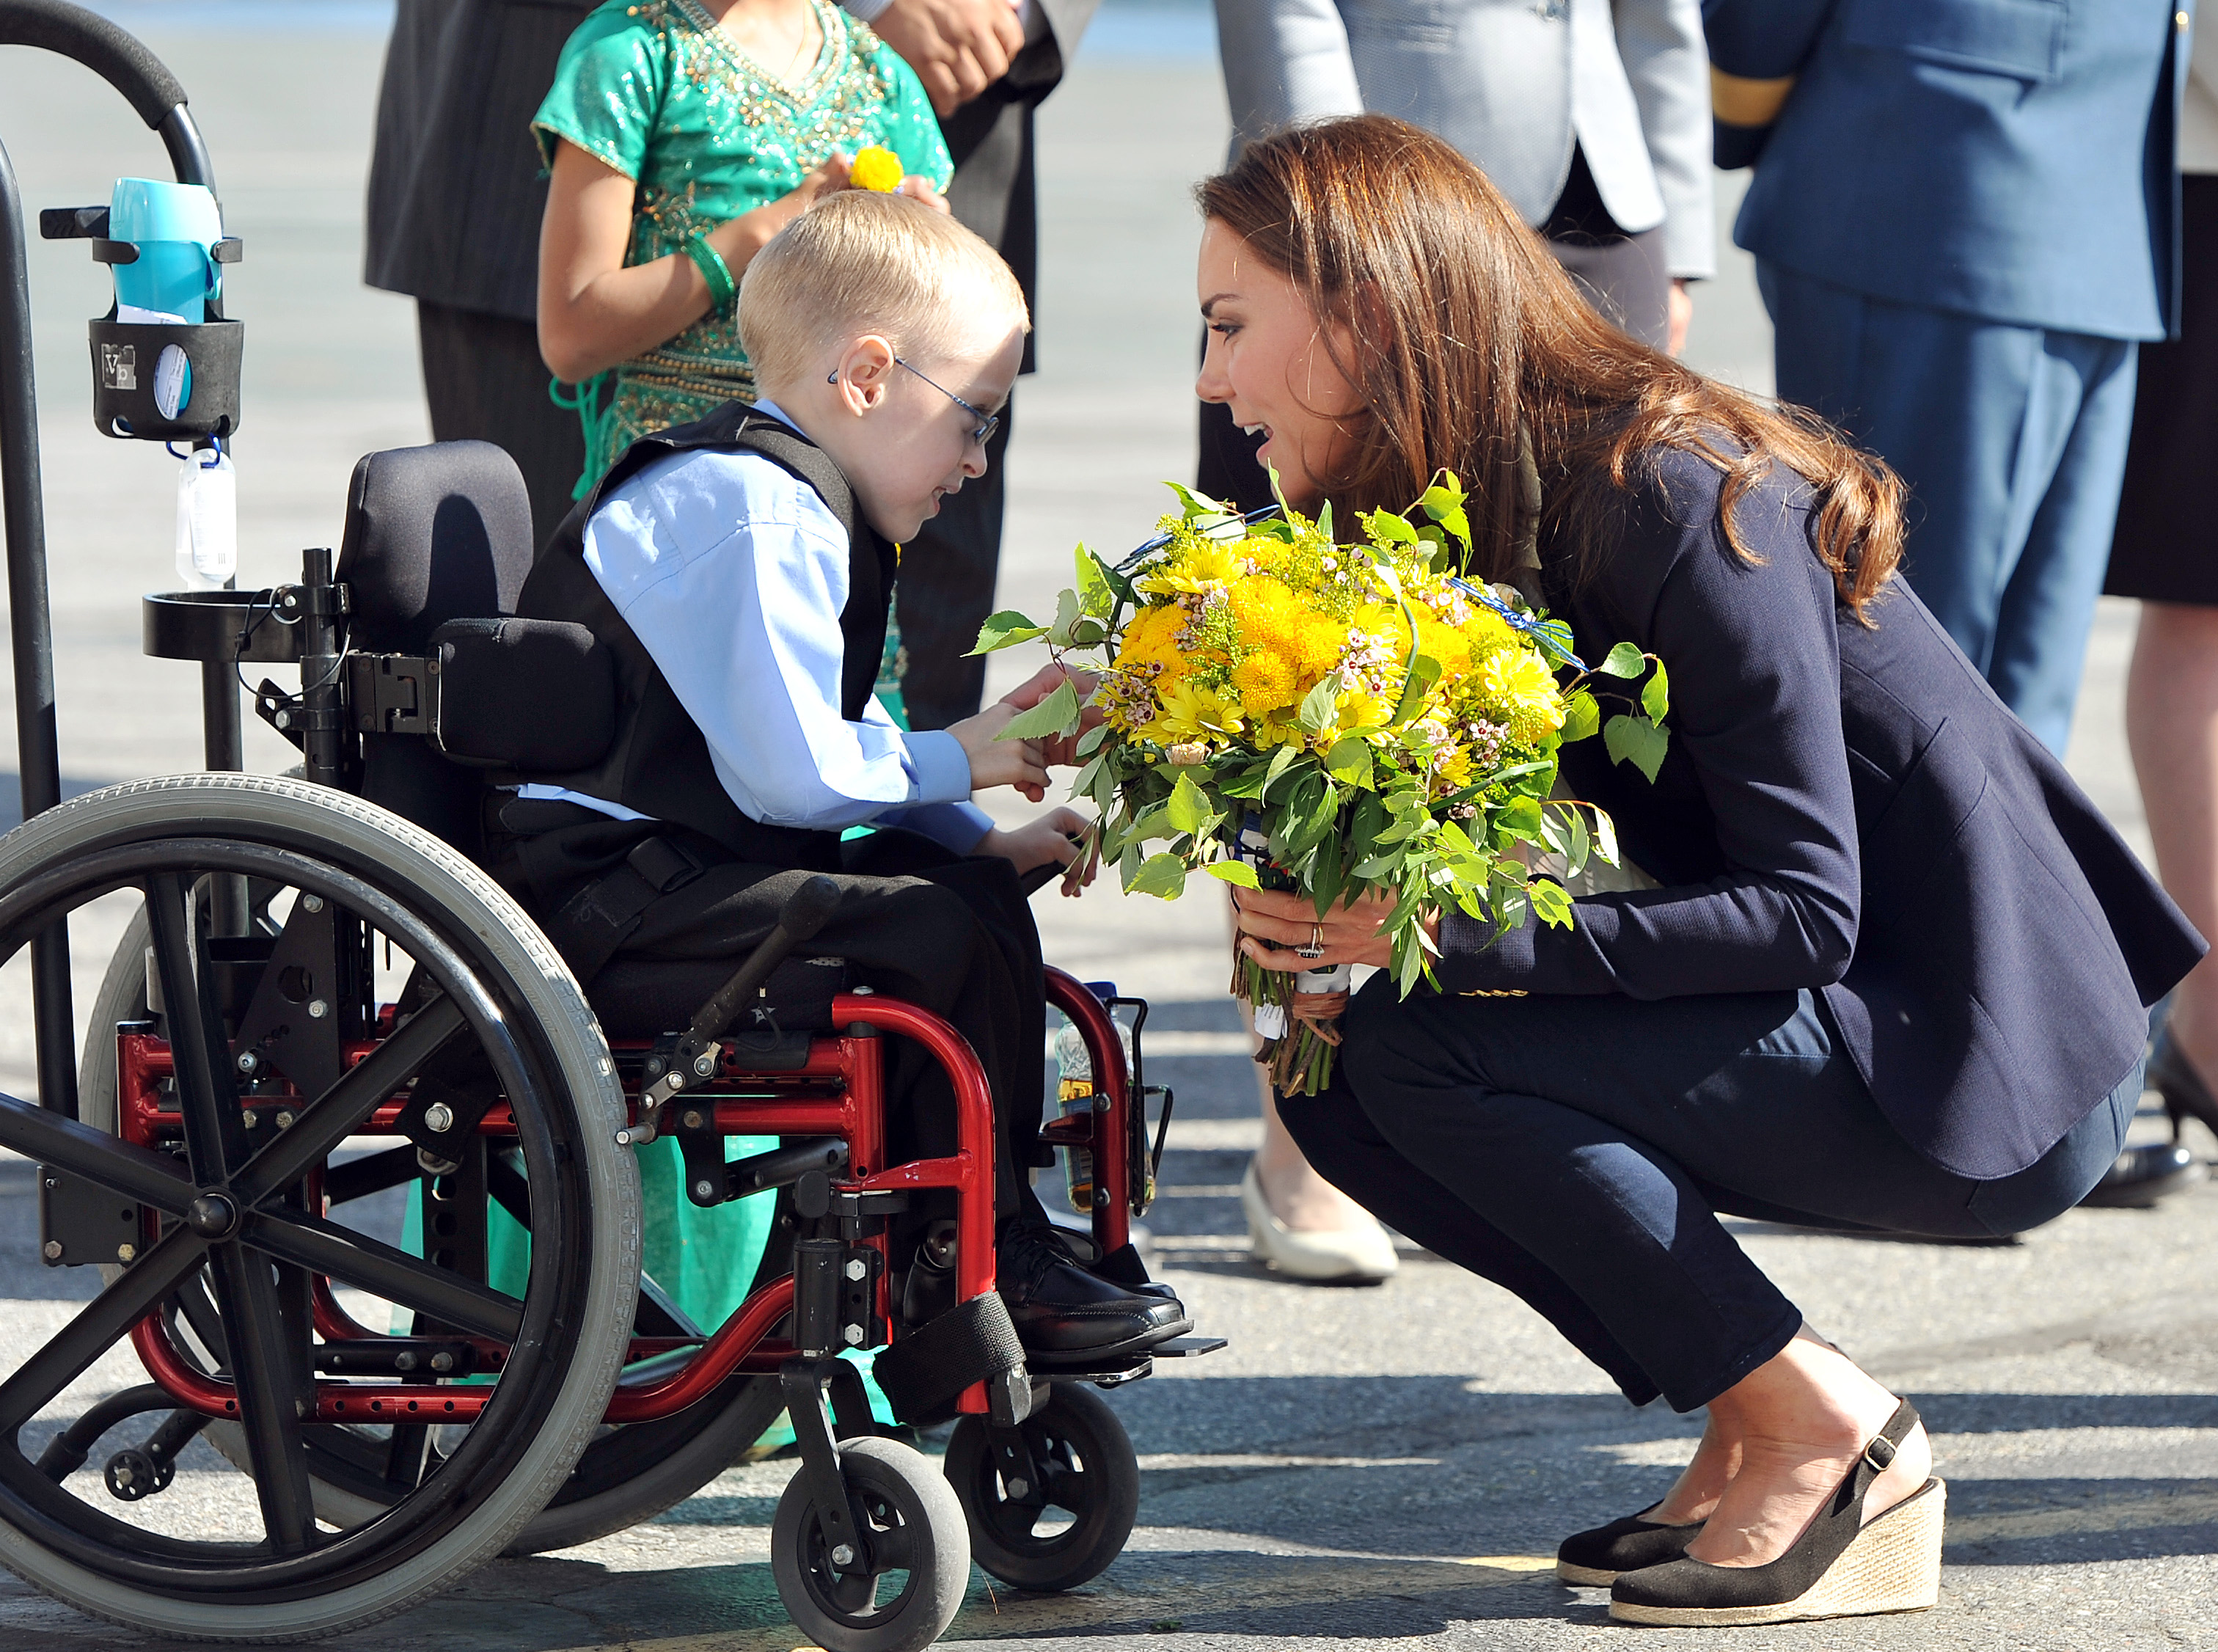 Catherine, Duchess of Cambridge wears a Smythe blazer while talking to Riley Oldford, 6, at Yellowknife Airport on July 6, 2011. GETTY IMAGES/POOL/John Stillwell